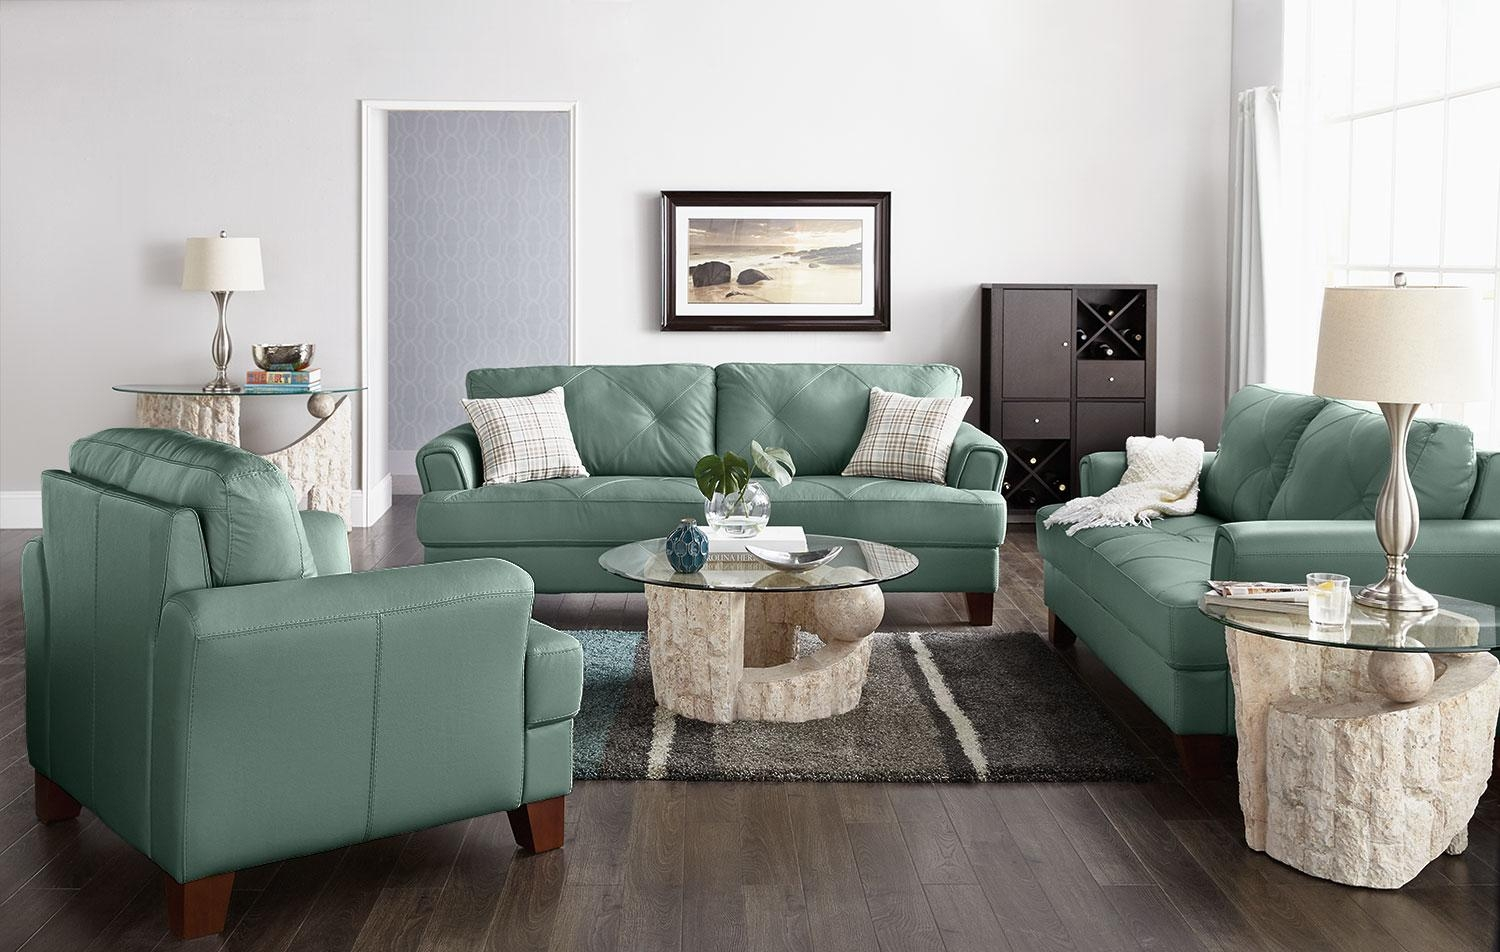 Vita 100% Genuine Leather Sofa – Sea Foam | The Brick Intended For Seafoam Green Couches (Image 20 of 20)